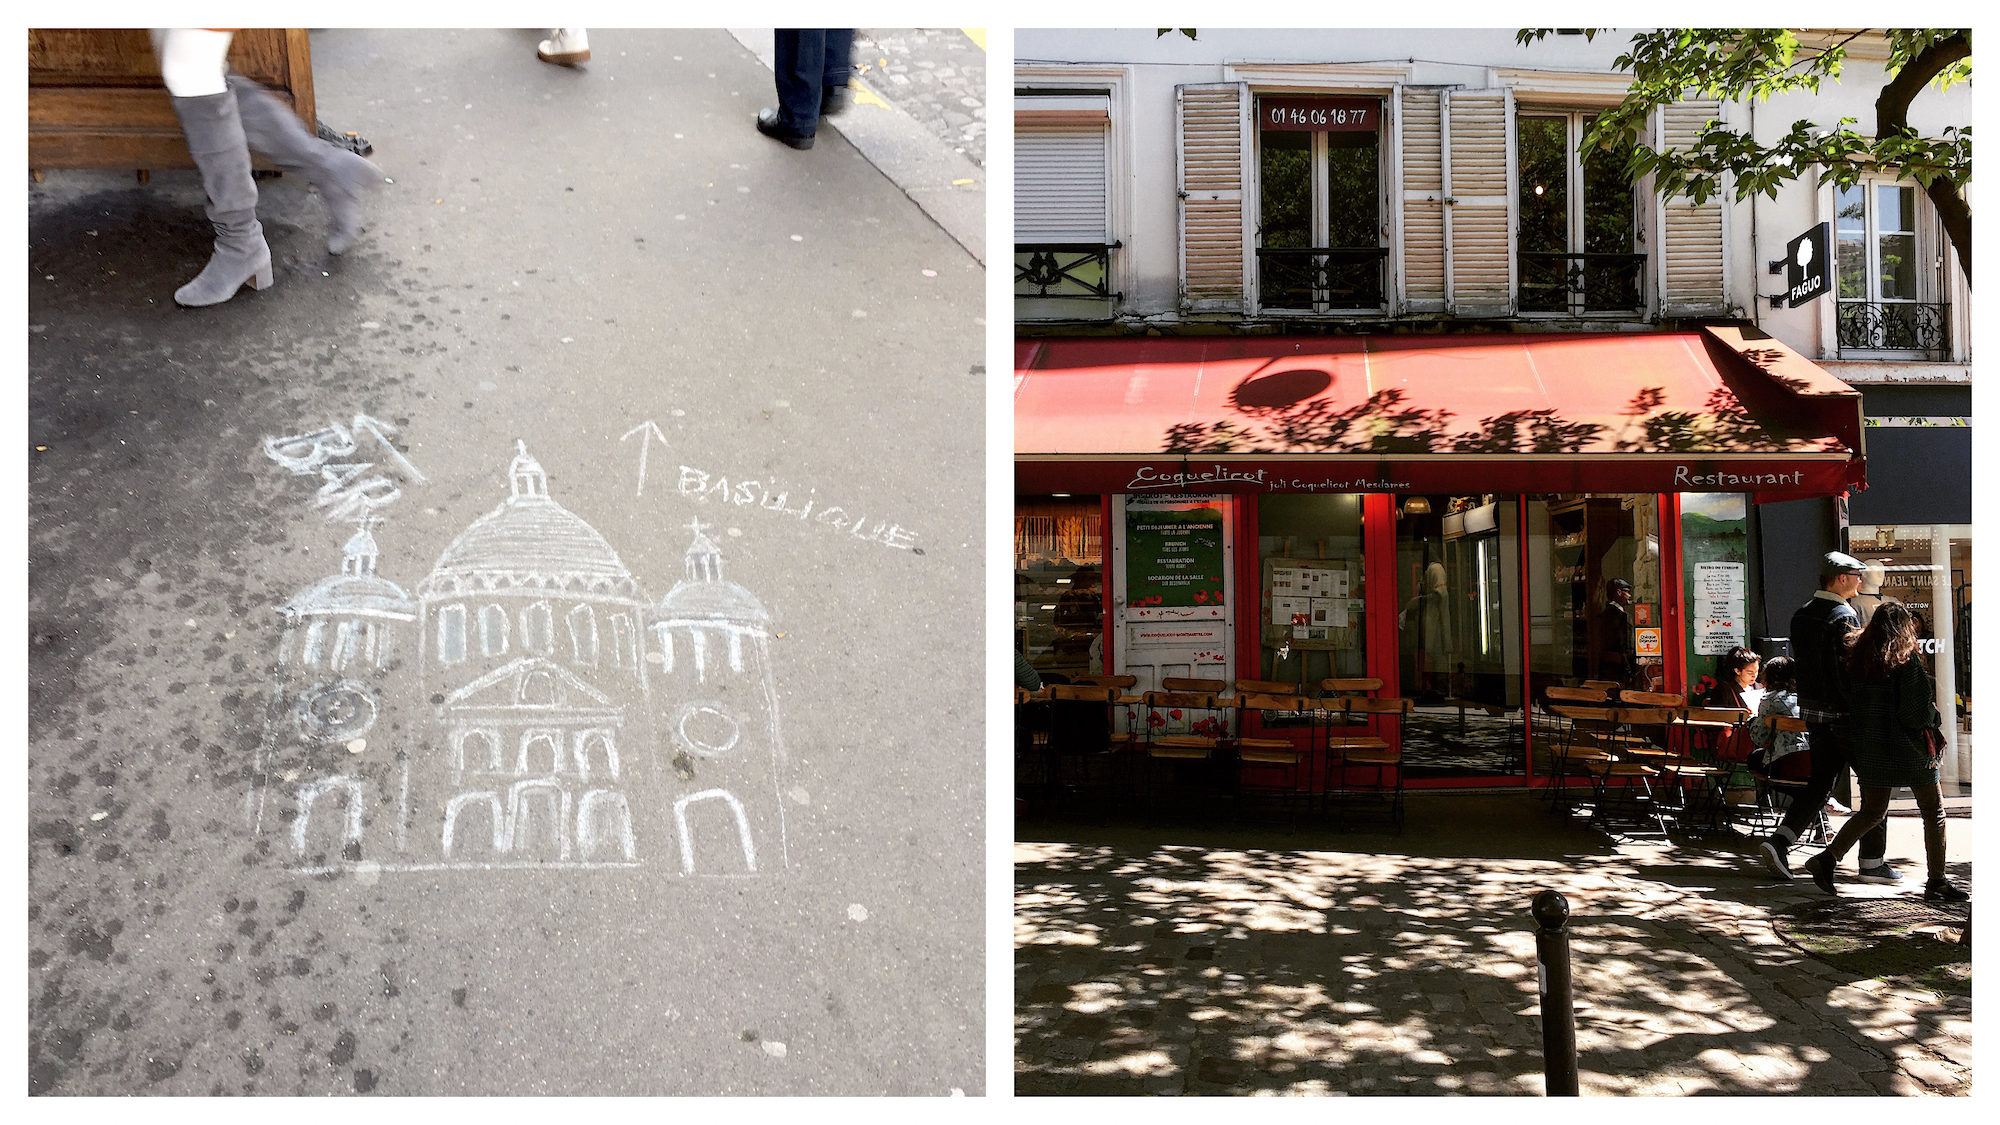 A chalk drawing of the Sacré Coeur Basilica in Montmartre on a sidewalk in Paris (left). A quaint bistro lined by a terrace on a tree-lined square in Paris in summer (right).